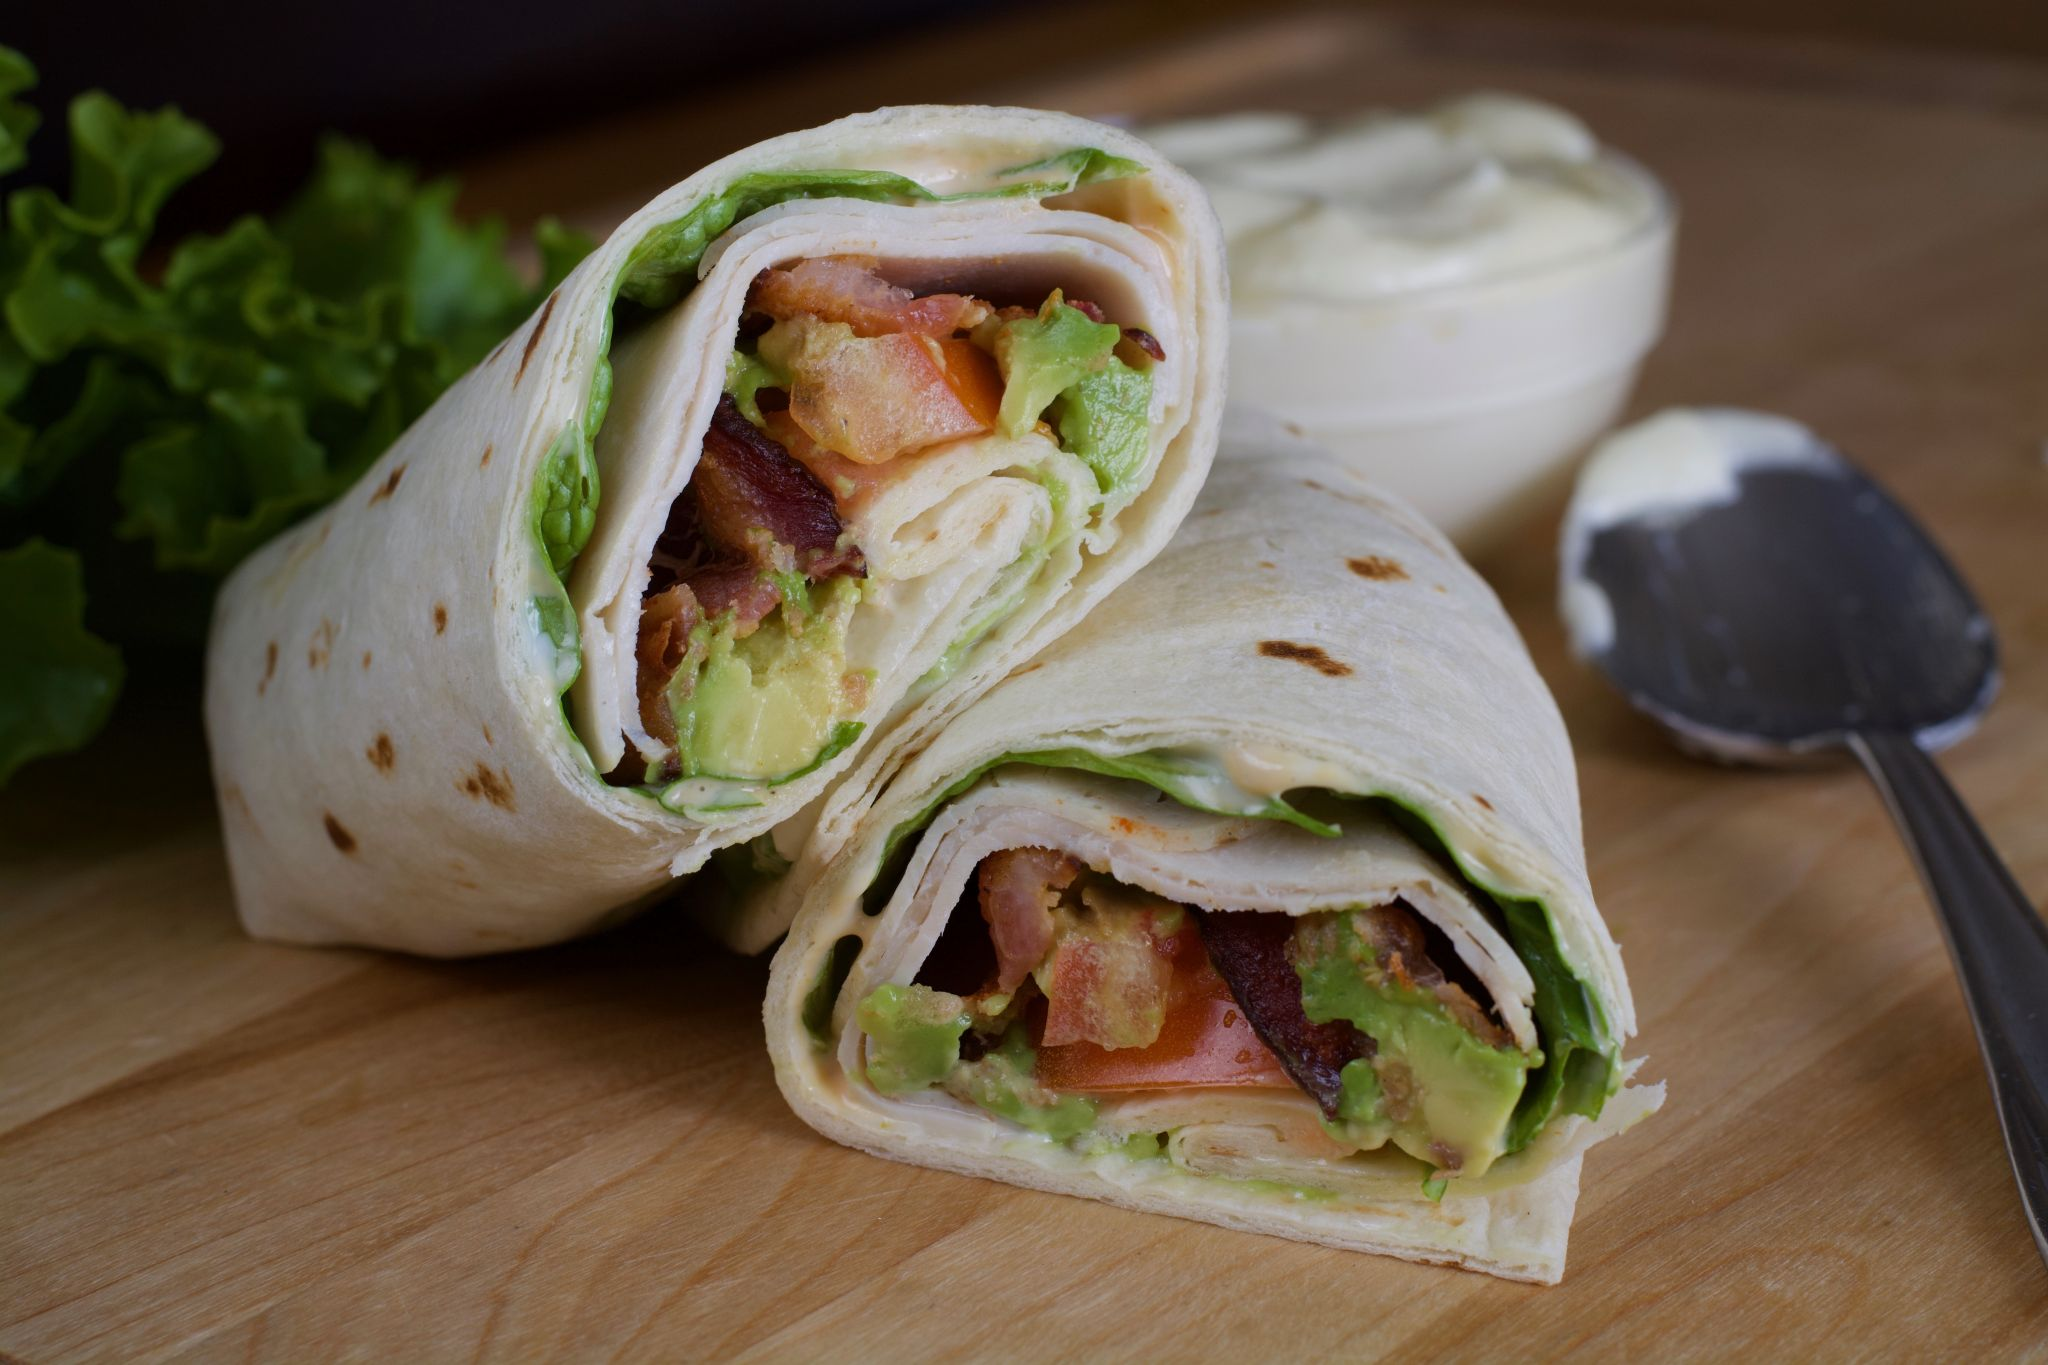 Turkey, Bacon & Avocado Wraps